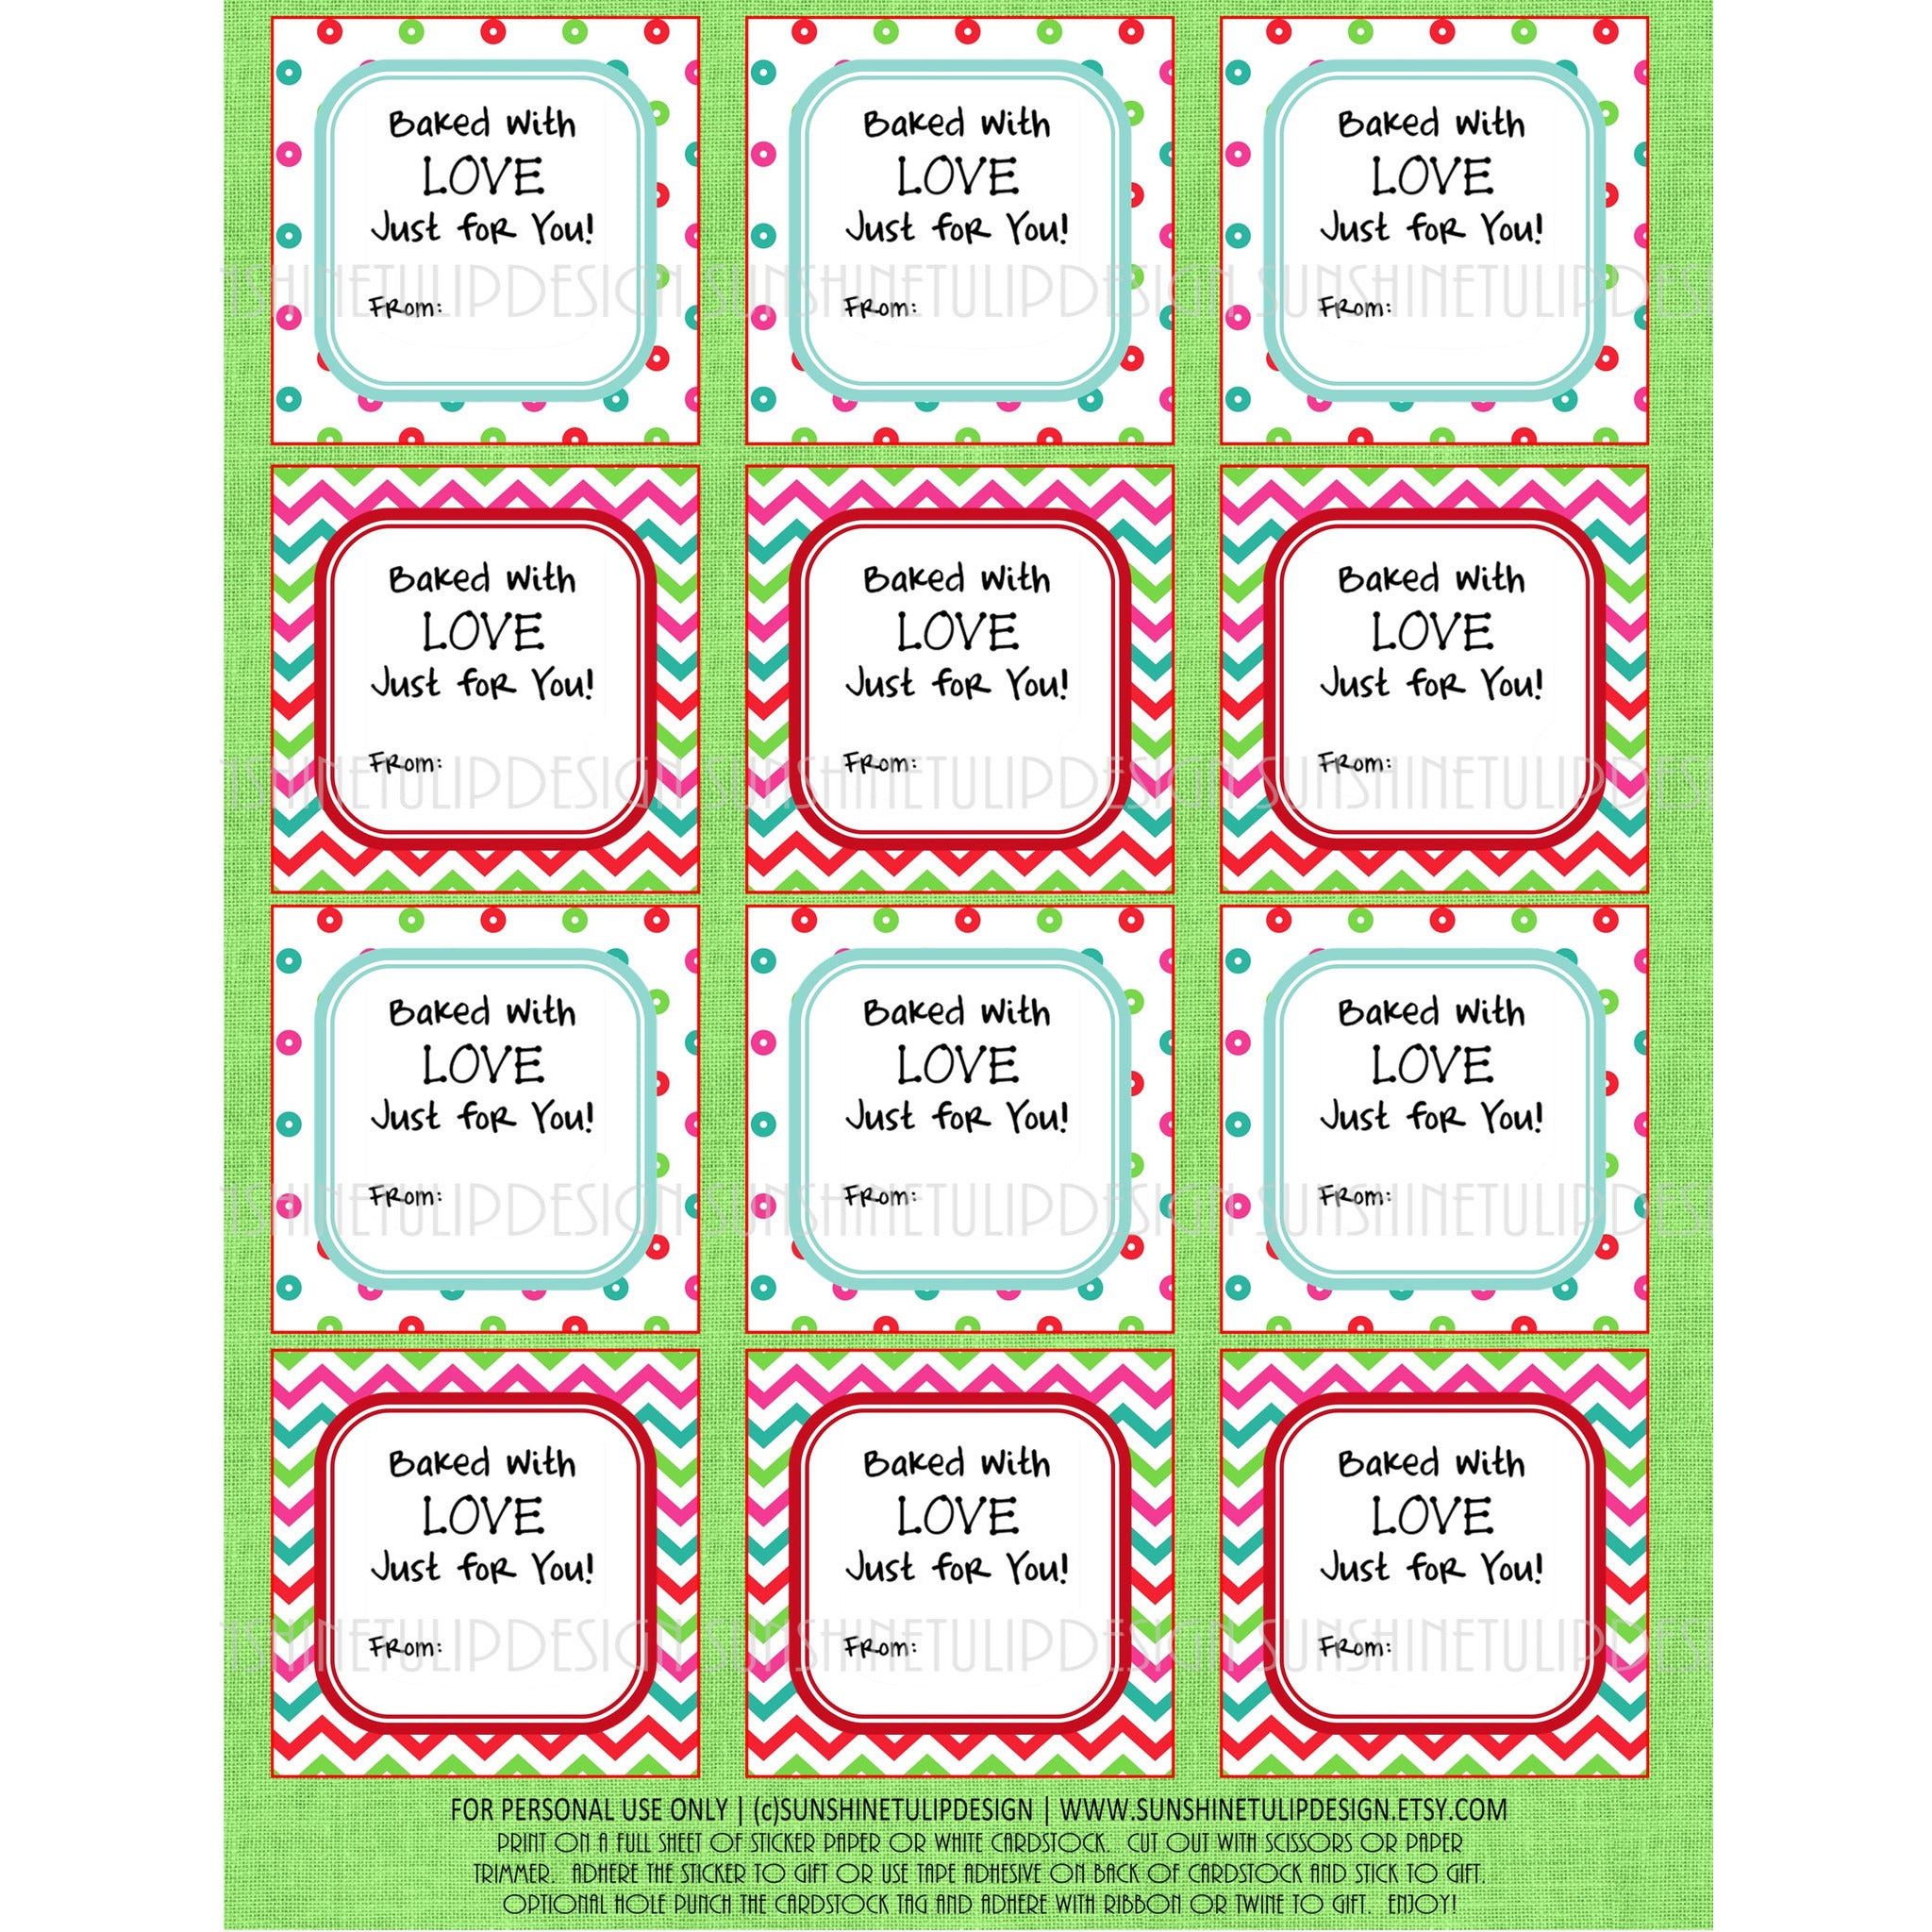 picture regarding Printable Cardstock Tags referred to as Printable Xmas Food items Labels, Baked With Delight in Xmas Present Tags  Sticker Labels